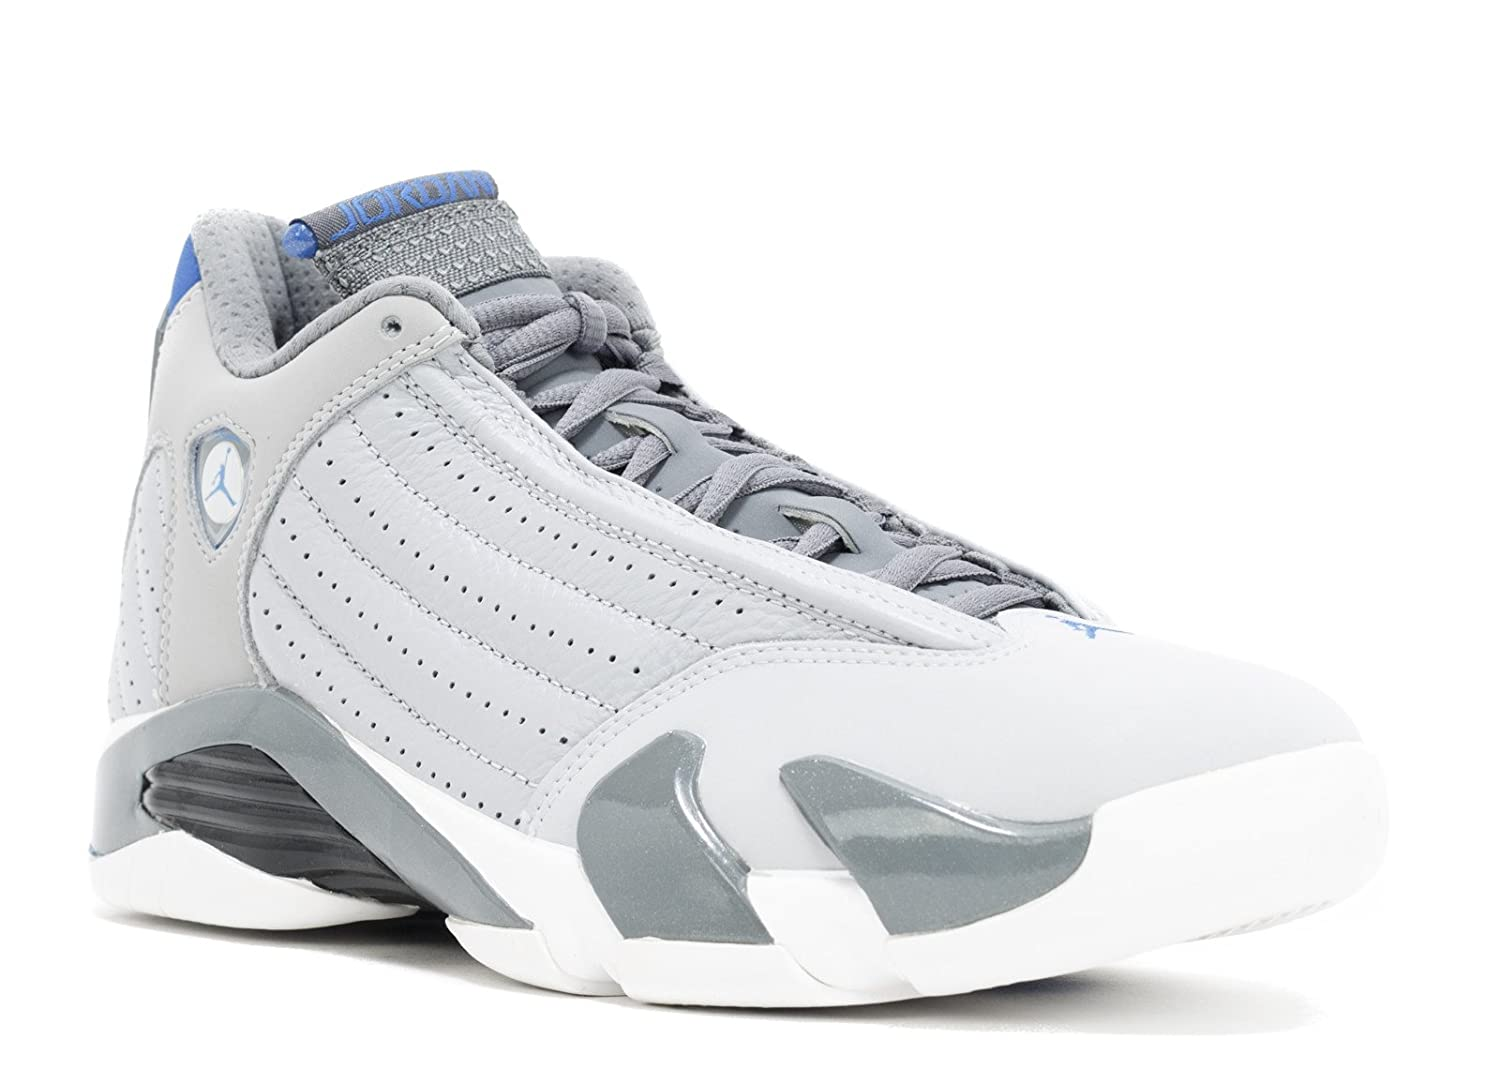 sneakers for cheap 2d7db d3afe Amazon.com   Jordan Air 14 Retro Men s Shoes Wolf Grey Sport Blue-Clay  Grey-White 487471-004 (10.5 D(M) US)   Basketball